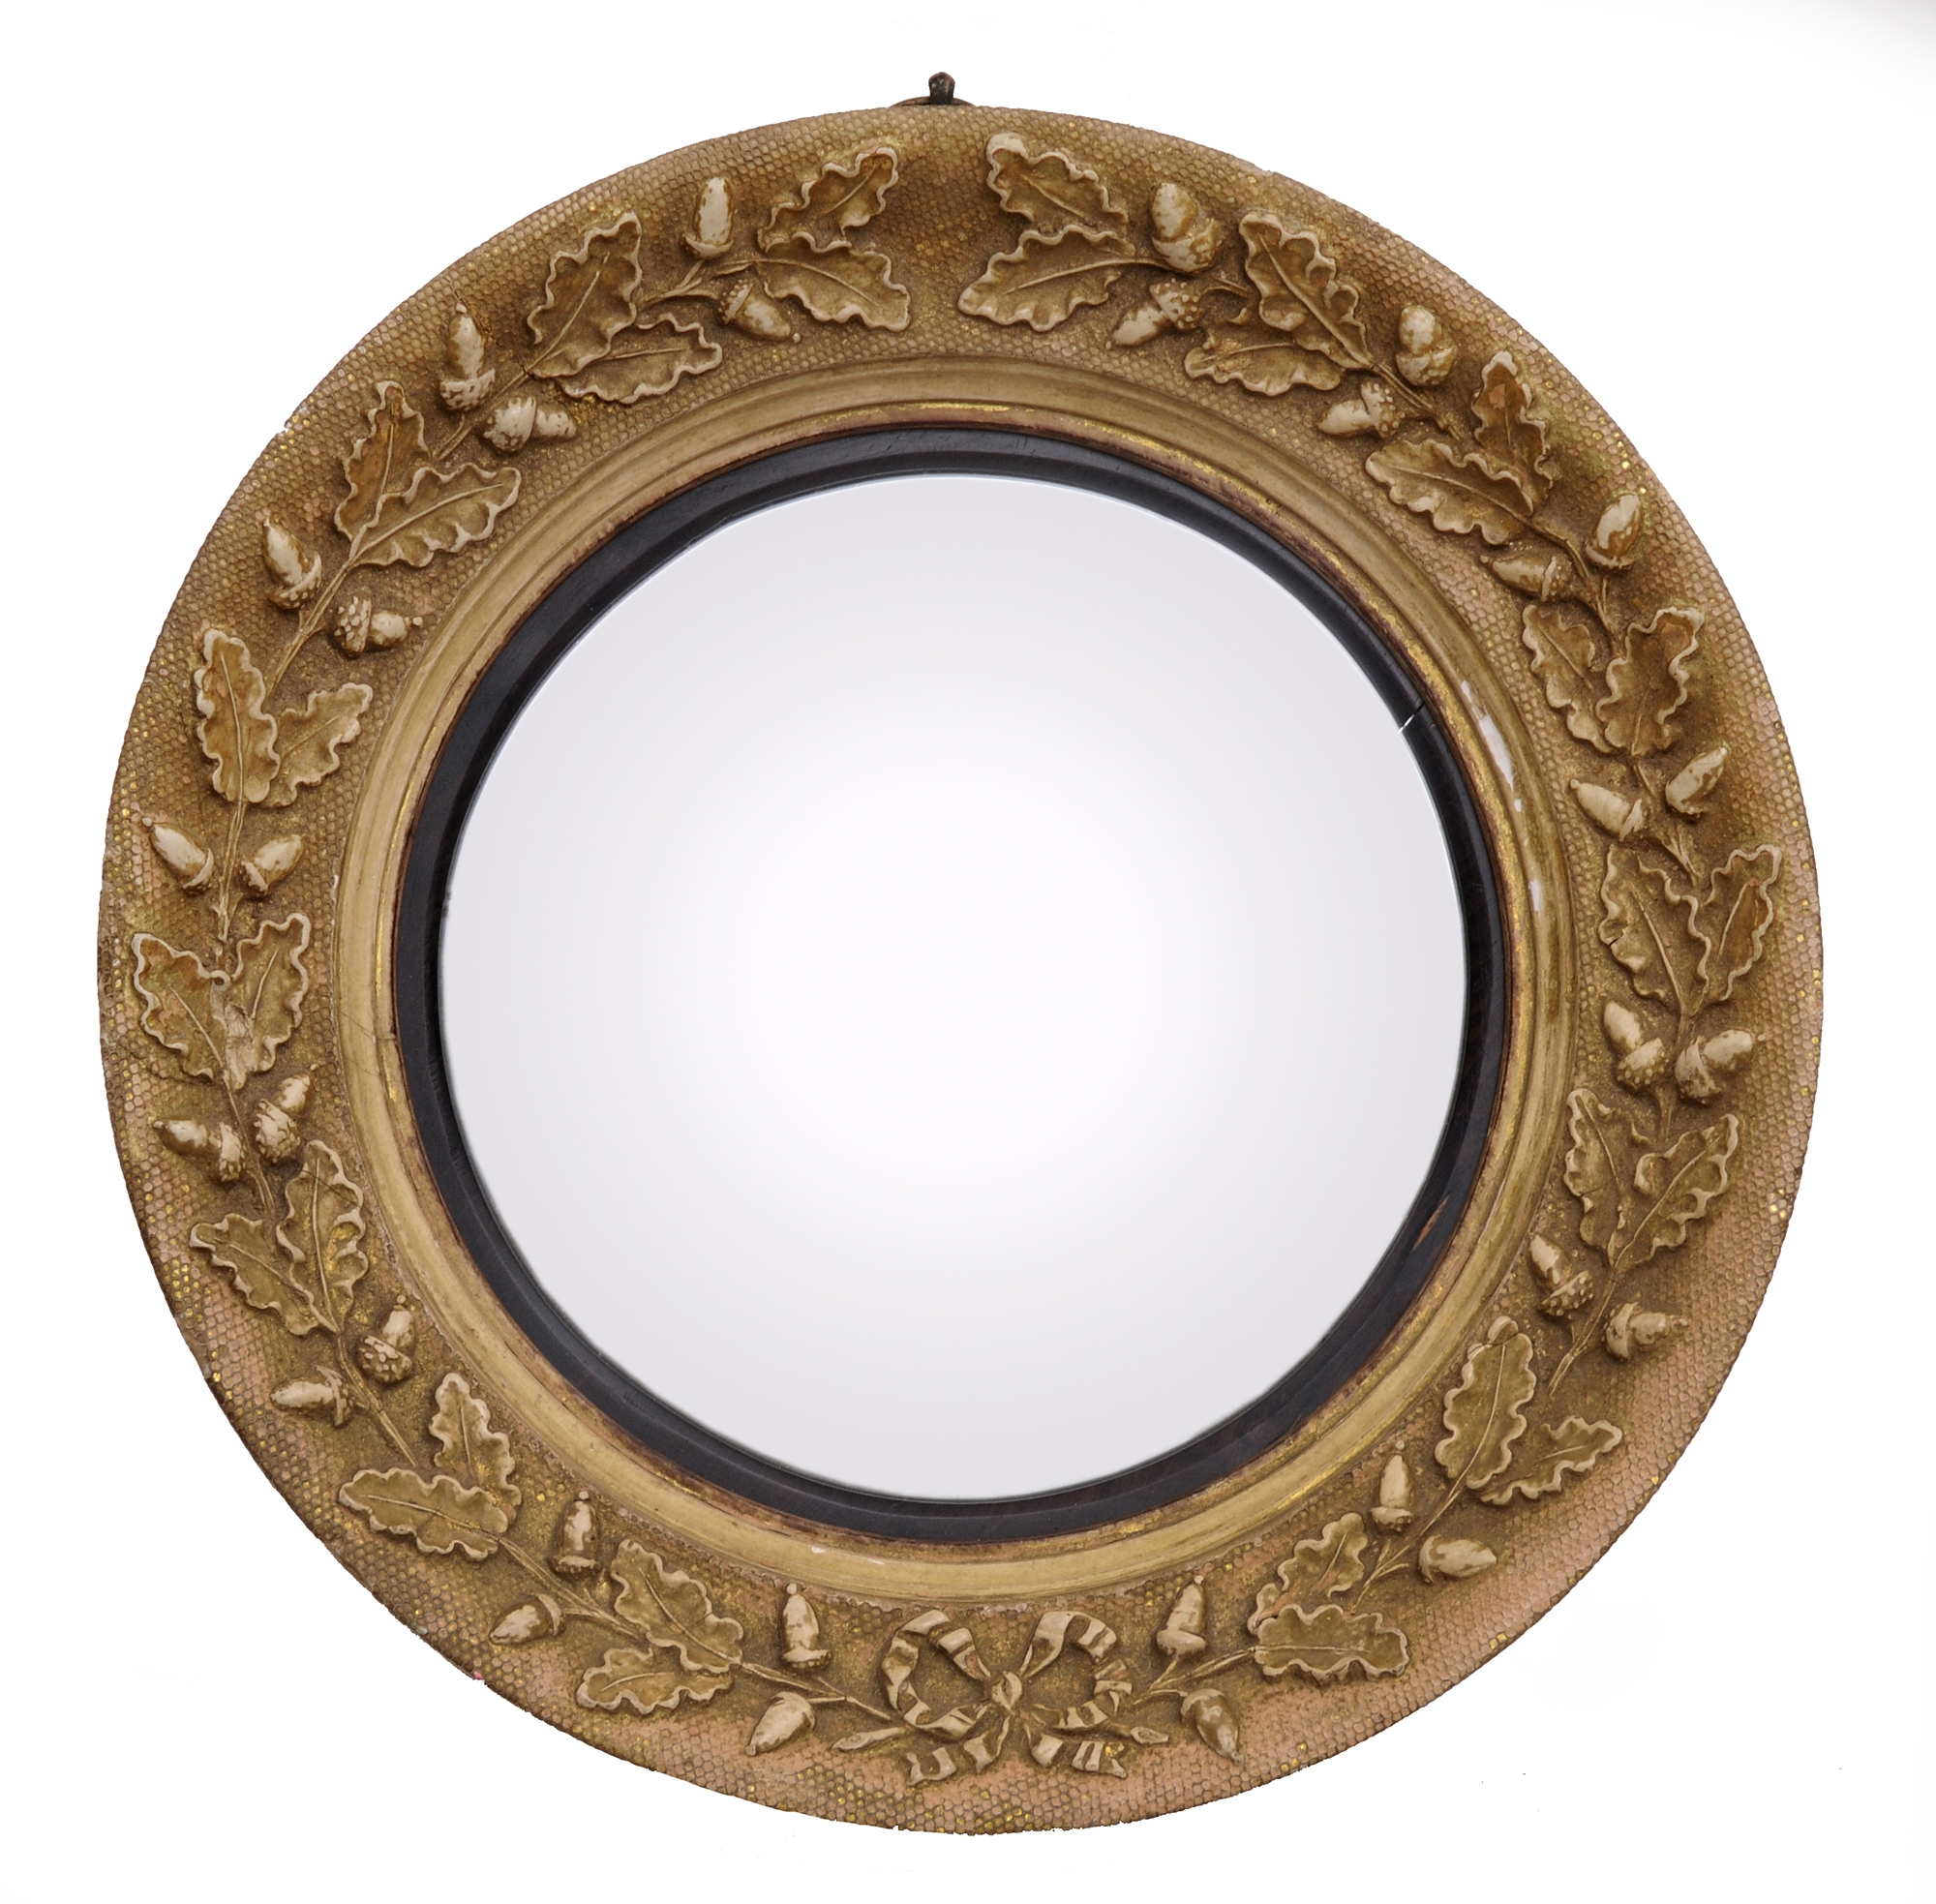 Small English Giltwood Antique Convex Mirror With Acorns Intended For Small Convex Mirrors (Image 14 of 15)